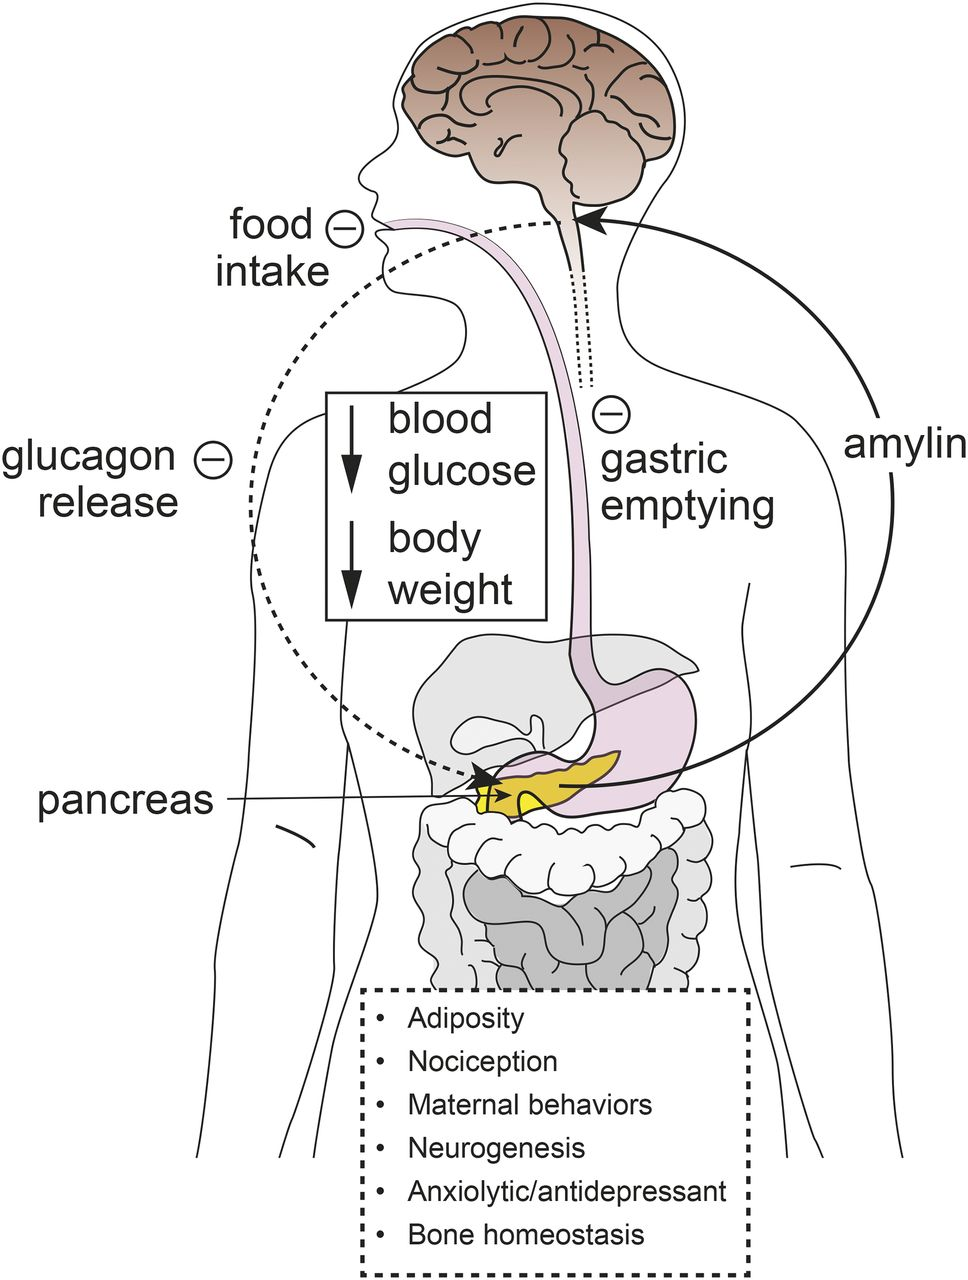 an in depth review of the functions of the pancreas In-depth review 1  andrographis paniculata,  andrographolides are thought to enhance immune system functions such as production of white blood cells.